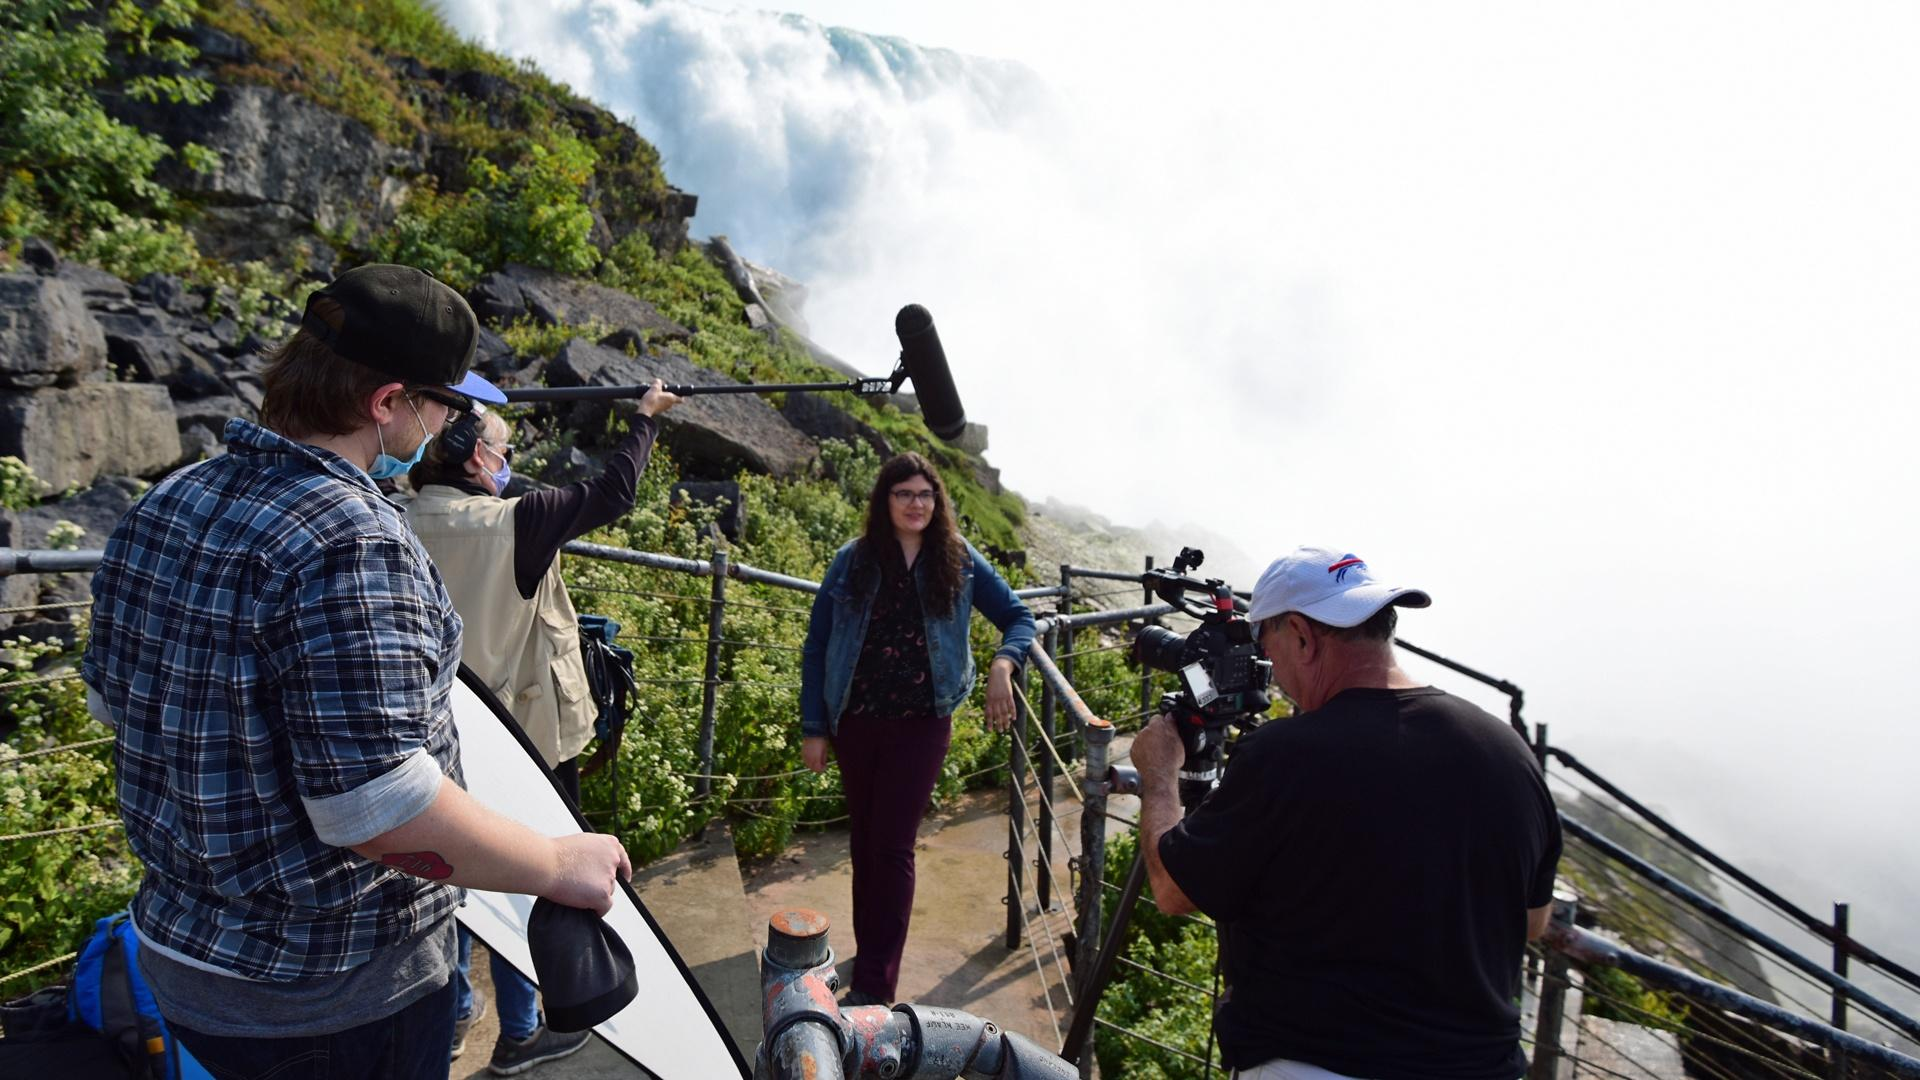 Bailey Critopn, Tami Coleman and Jim Zinkowski record an epsiode of Compact Science with host Sarajane Gomlak-Green at the base of Niagara Falls